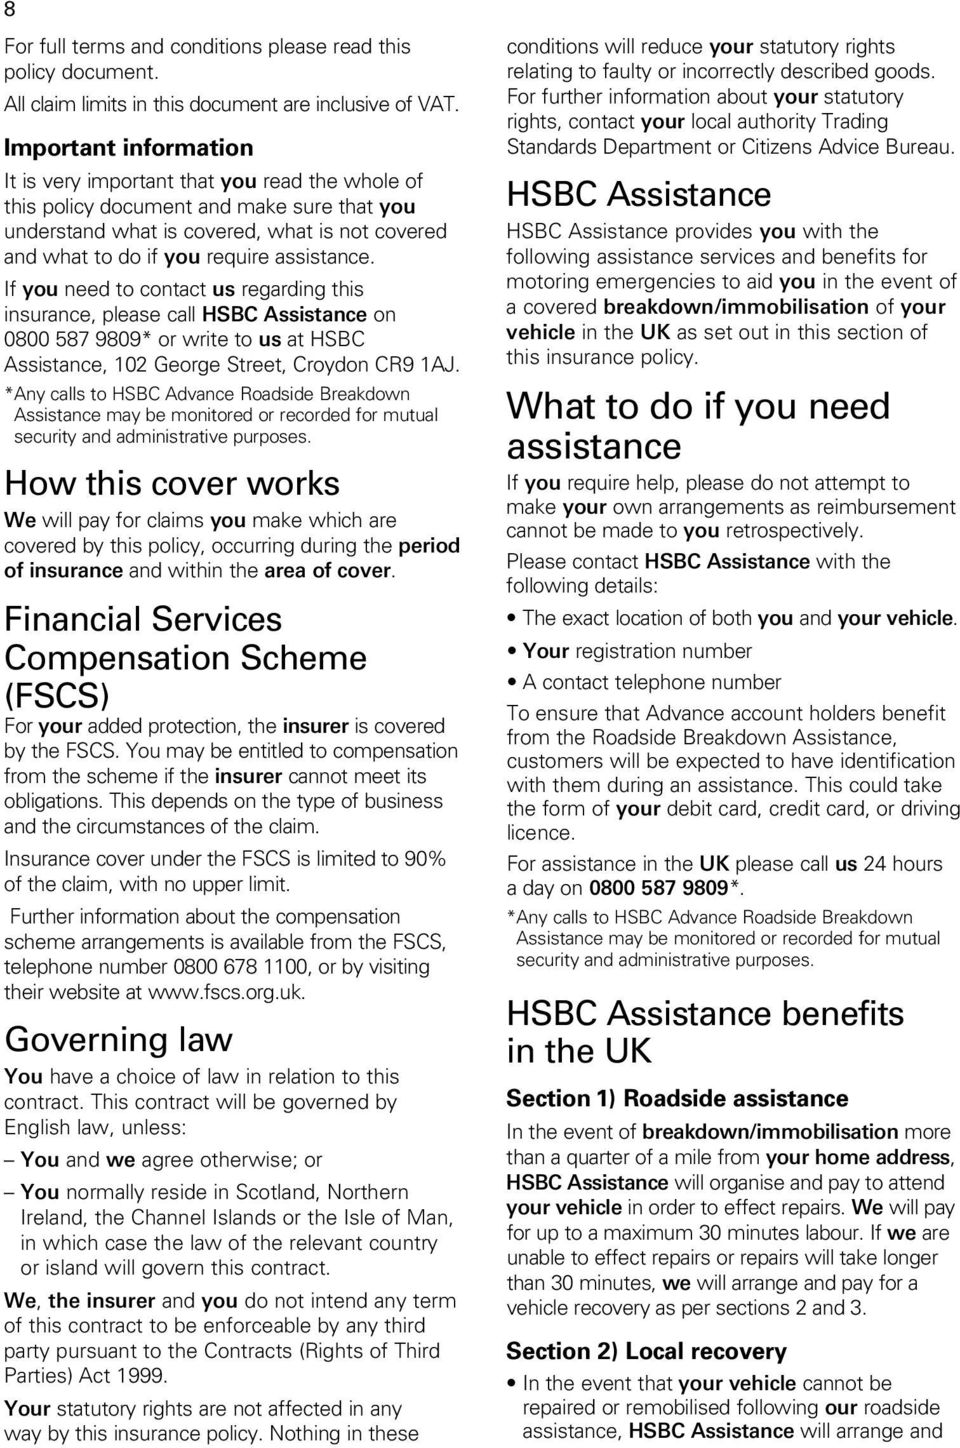 assistance. If you need to contact us regarding this insurance, please call HSBC Assistance on 0800 587 9809* or write to us at HSBC Assistance, 102 George Street, Croydon CR9 1AJ.